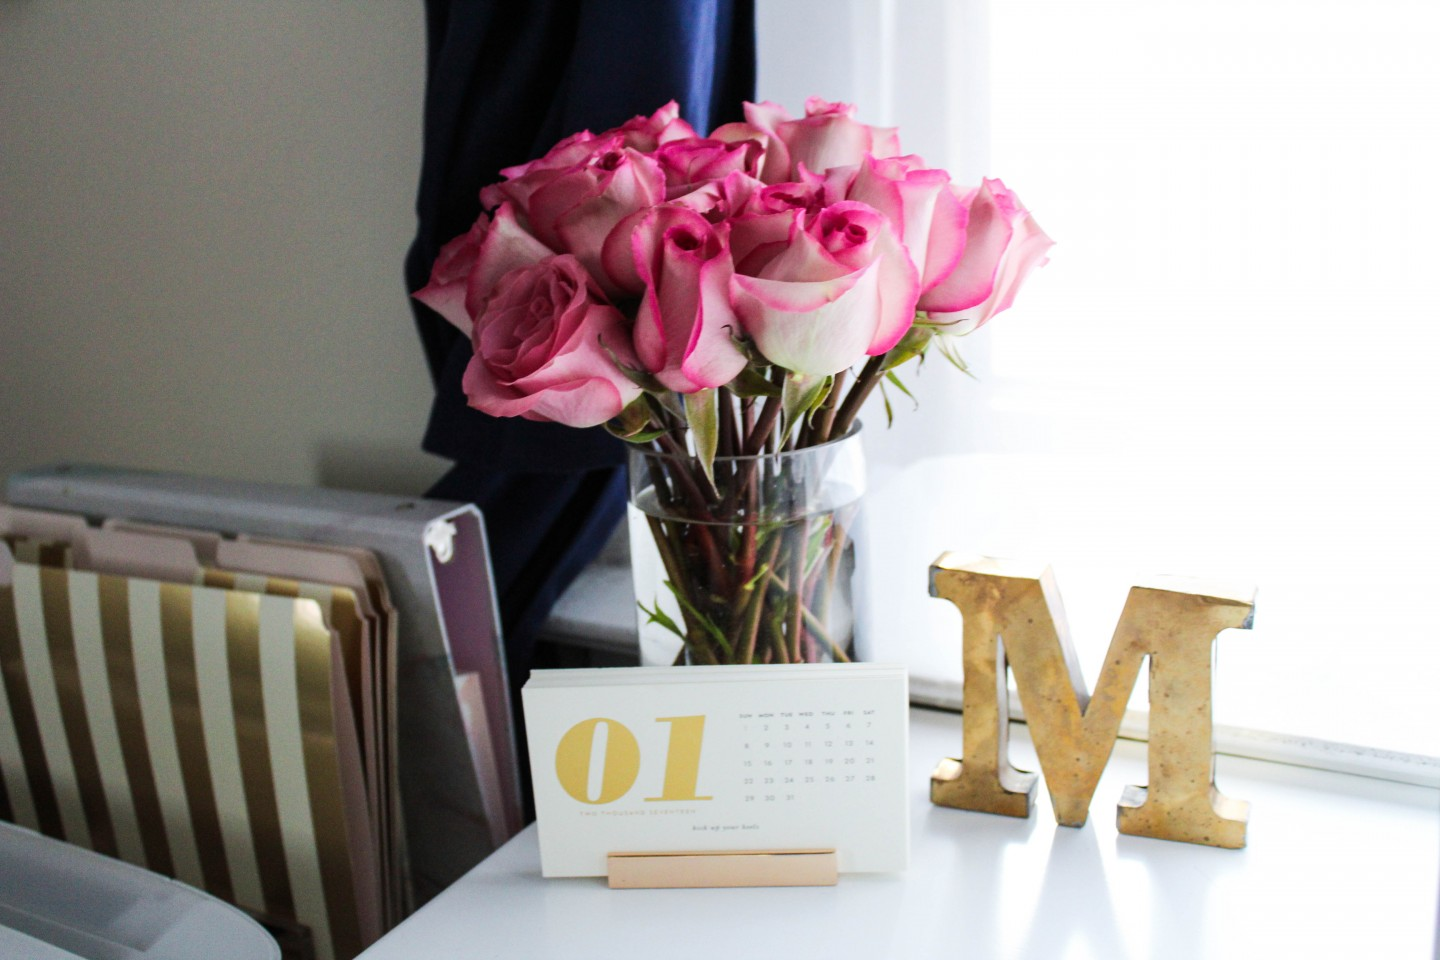 Lifestyle blogger Mollie Sheperdson shares a look at her new home office space